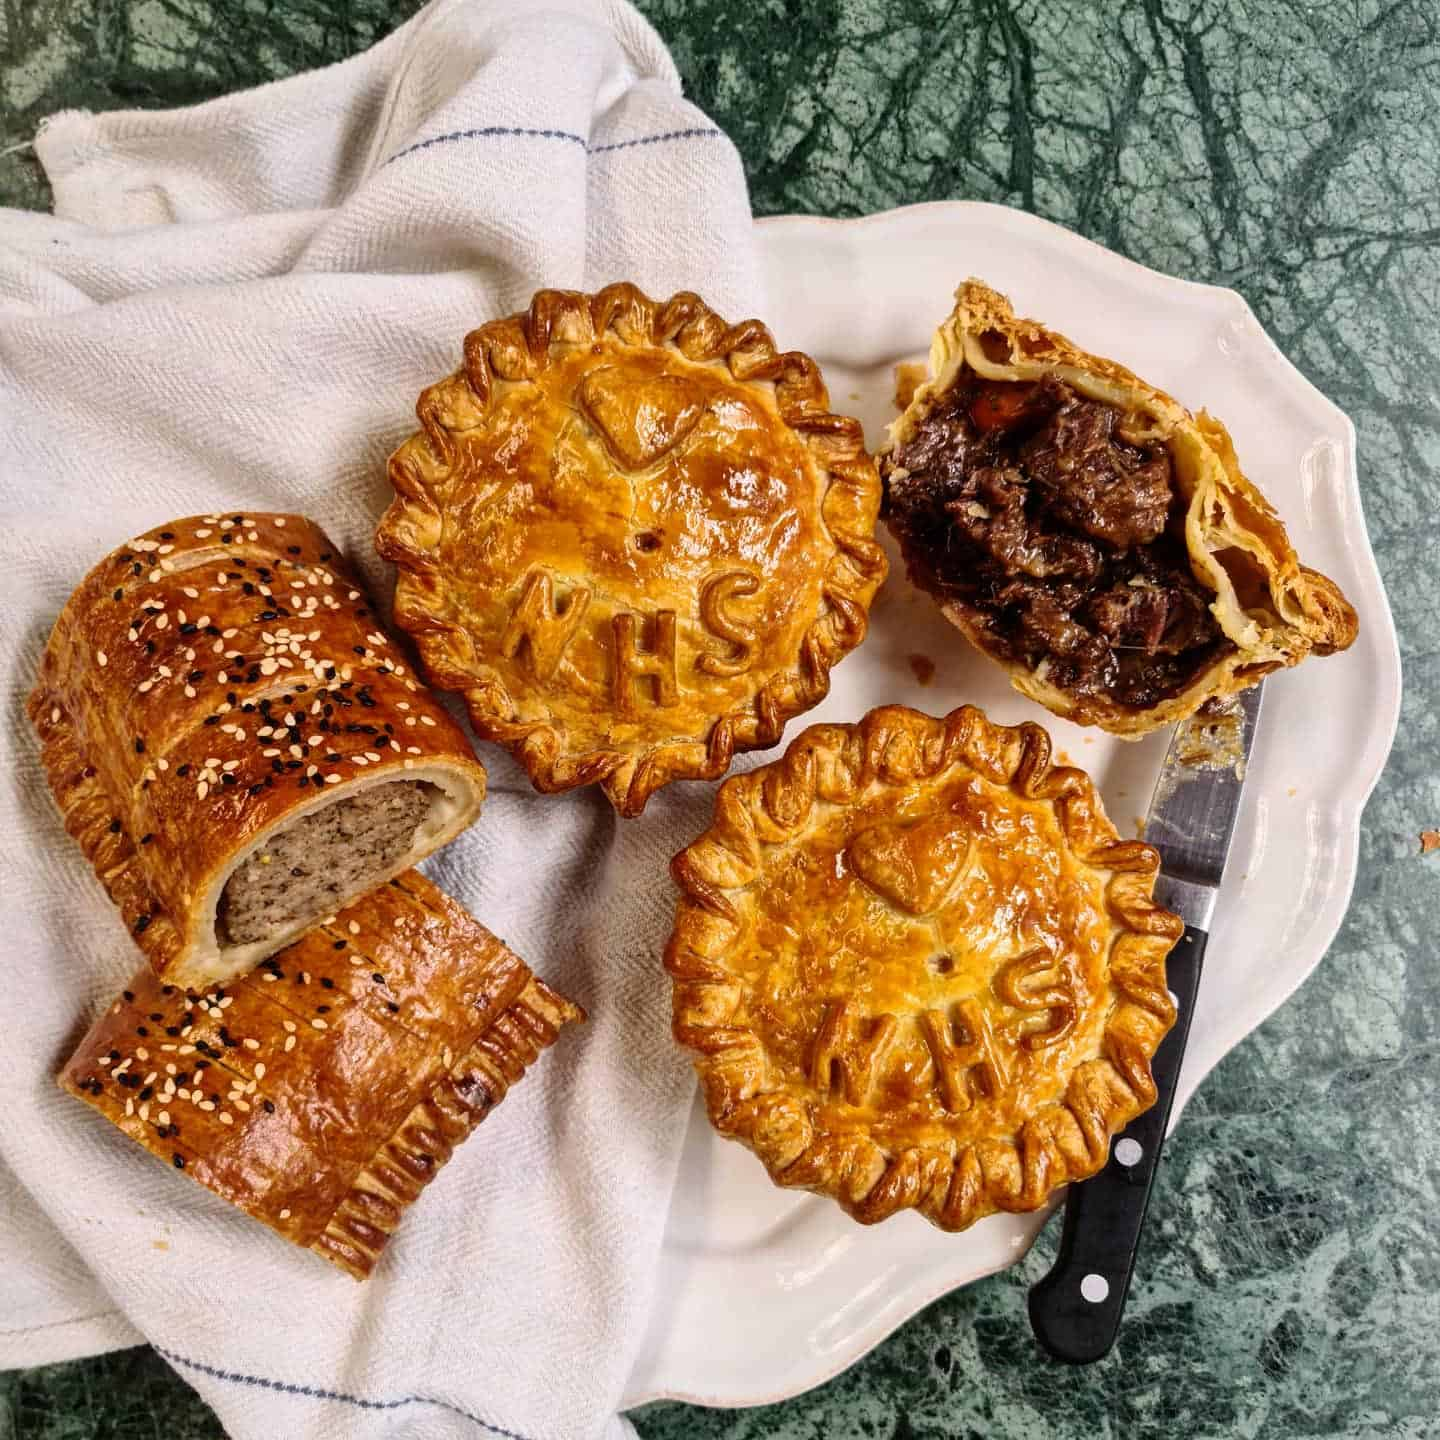 Rosewood London - Claum Franklin pies NHS Drings Holborn Dining Room